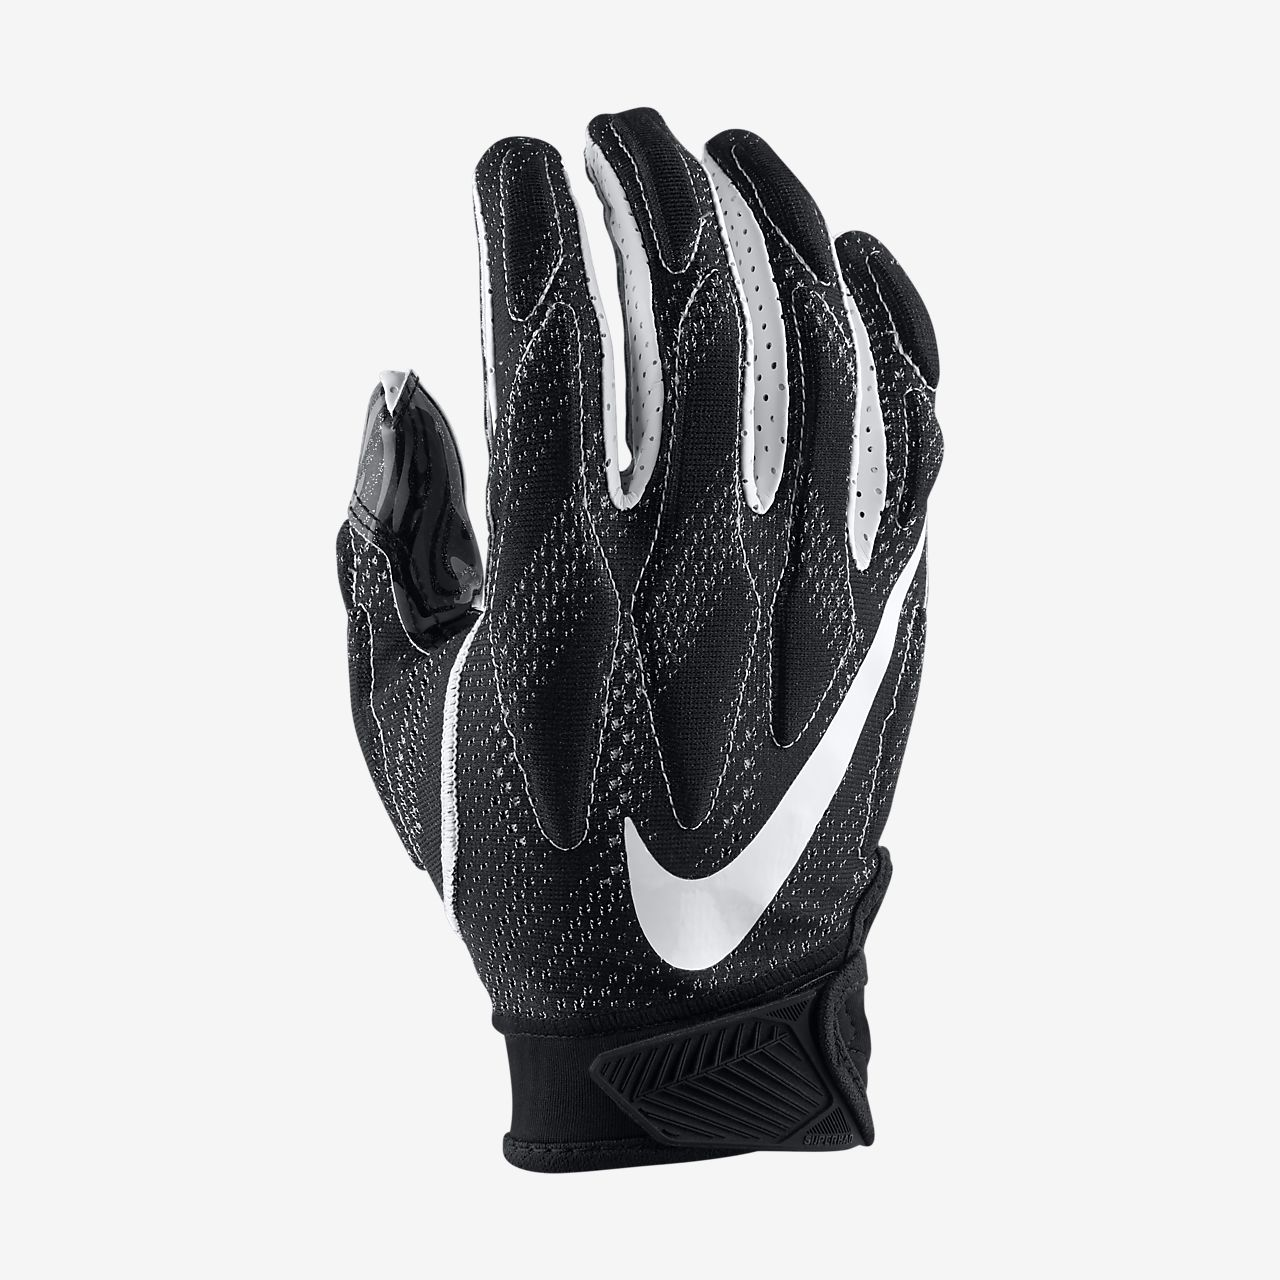 Nike Football Gloves: Nike Superbad 4.5 Football Gloves. Nike.com